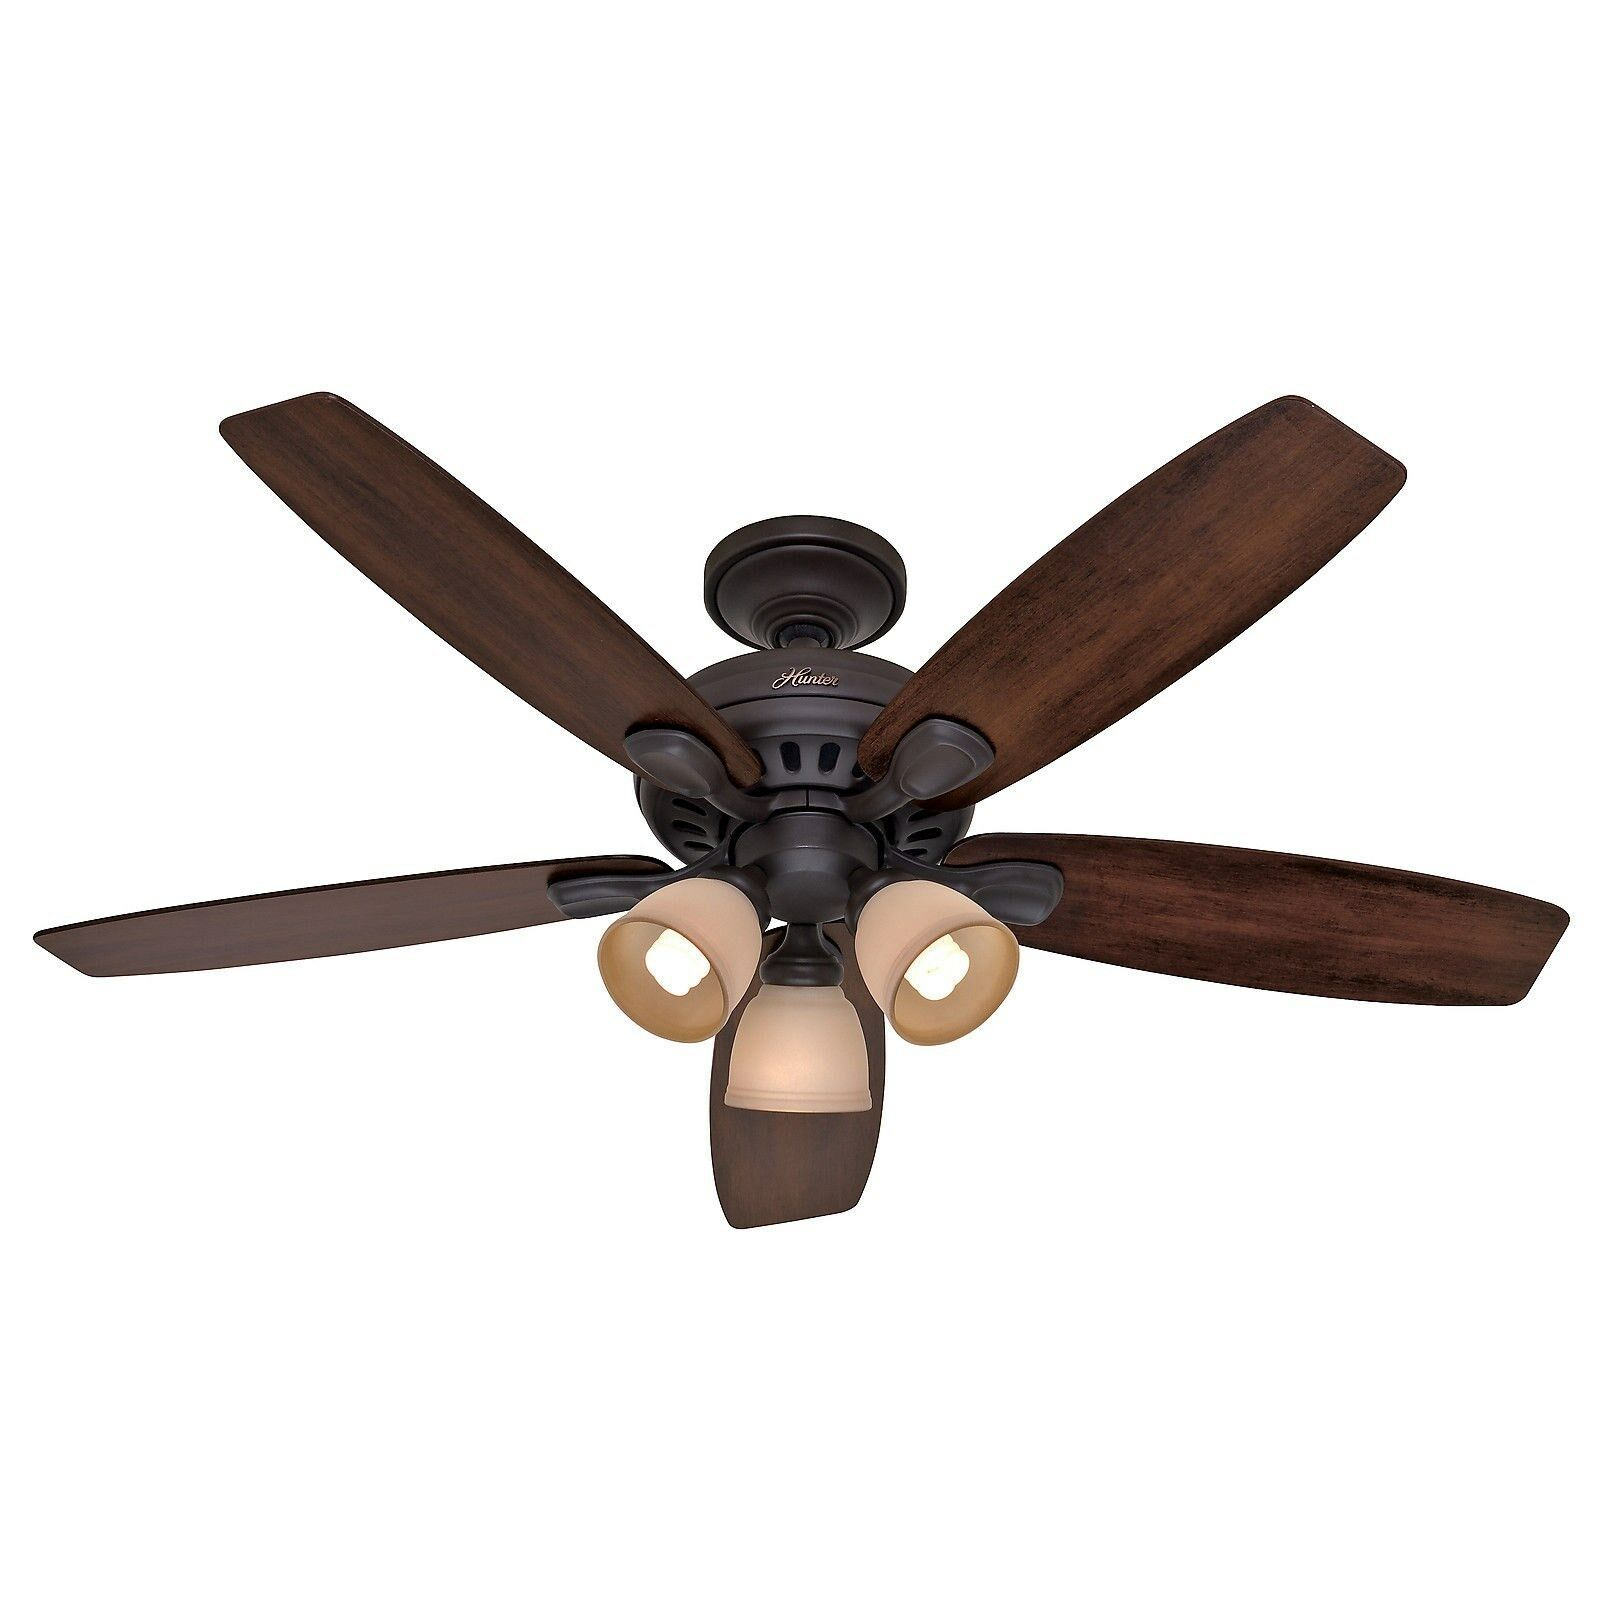 Ceiling Light Fan: Hunter 52 In. New Bronze Ceiling Fan With Light & Remote